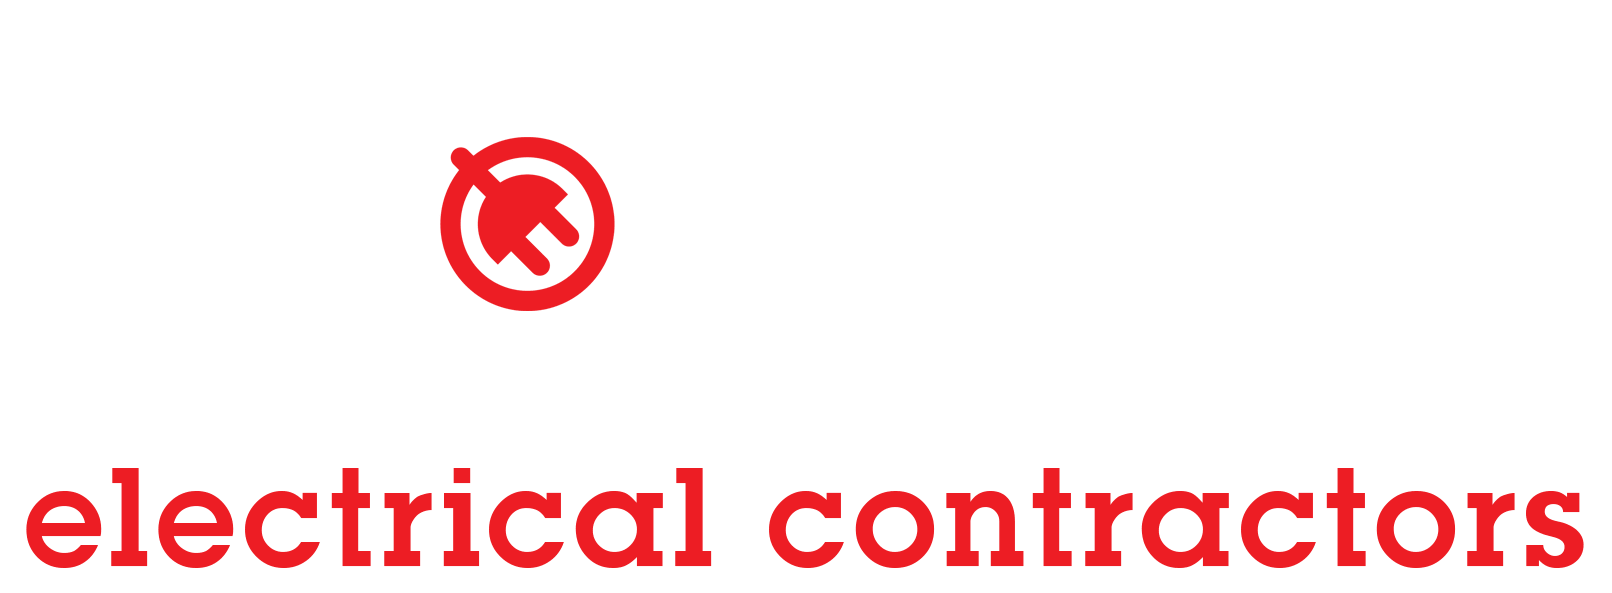 CEB Electrical Contractors